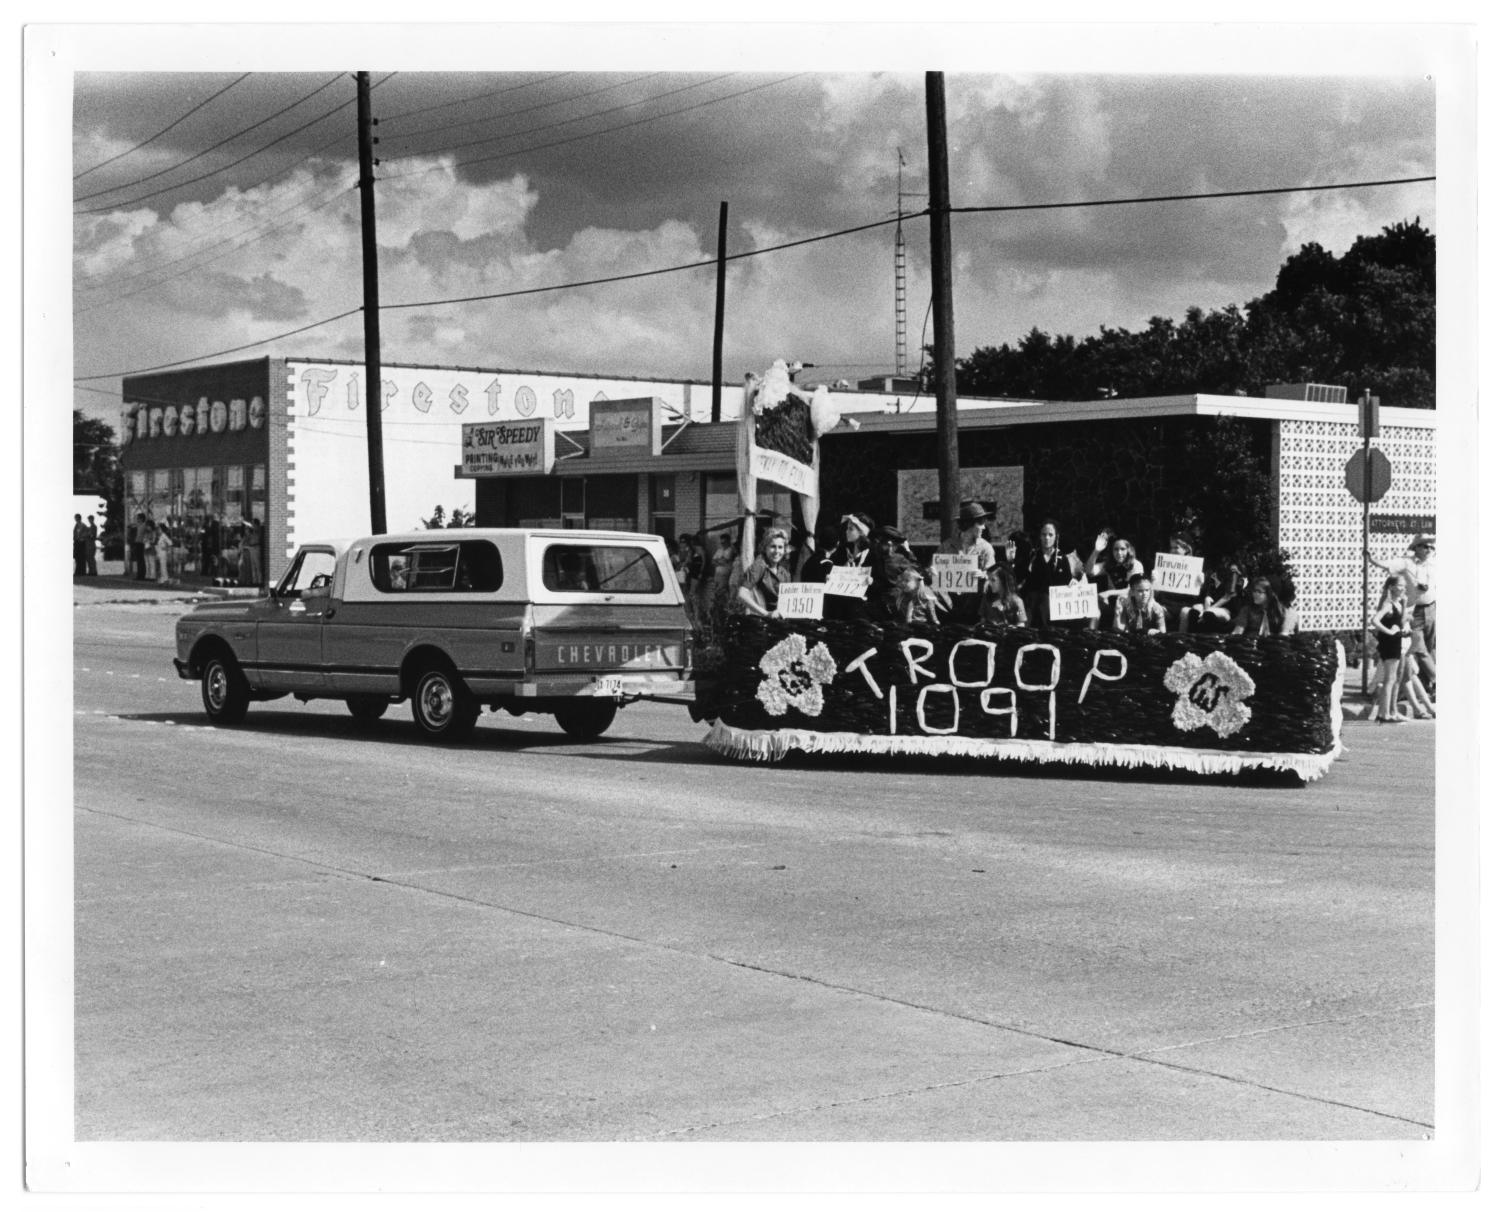 """Richardson Centennial Parade, Photograph of the Girl Scout Troop 1091 parade float, at the intersection of Main Street and Greenville Avenue in Richardson, Texas. The float is attached to the back of a Chevrolet truck. Girls on the float are wearing uniforms and holding signs illustrating what year their uniform was worn. A sign on the front of the float made of streamers has the Girl Scout logo and """"Troop 1091"""" on the front. In the background, there are people watching in front of businesses; one building on the left says """"Firestone"""" on the front and side.,"""